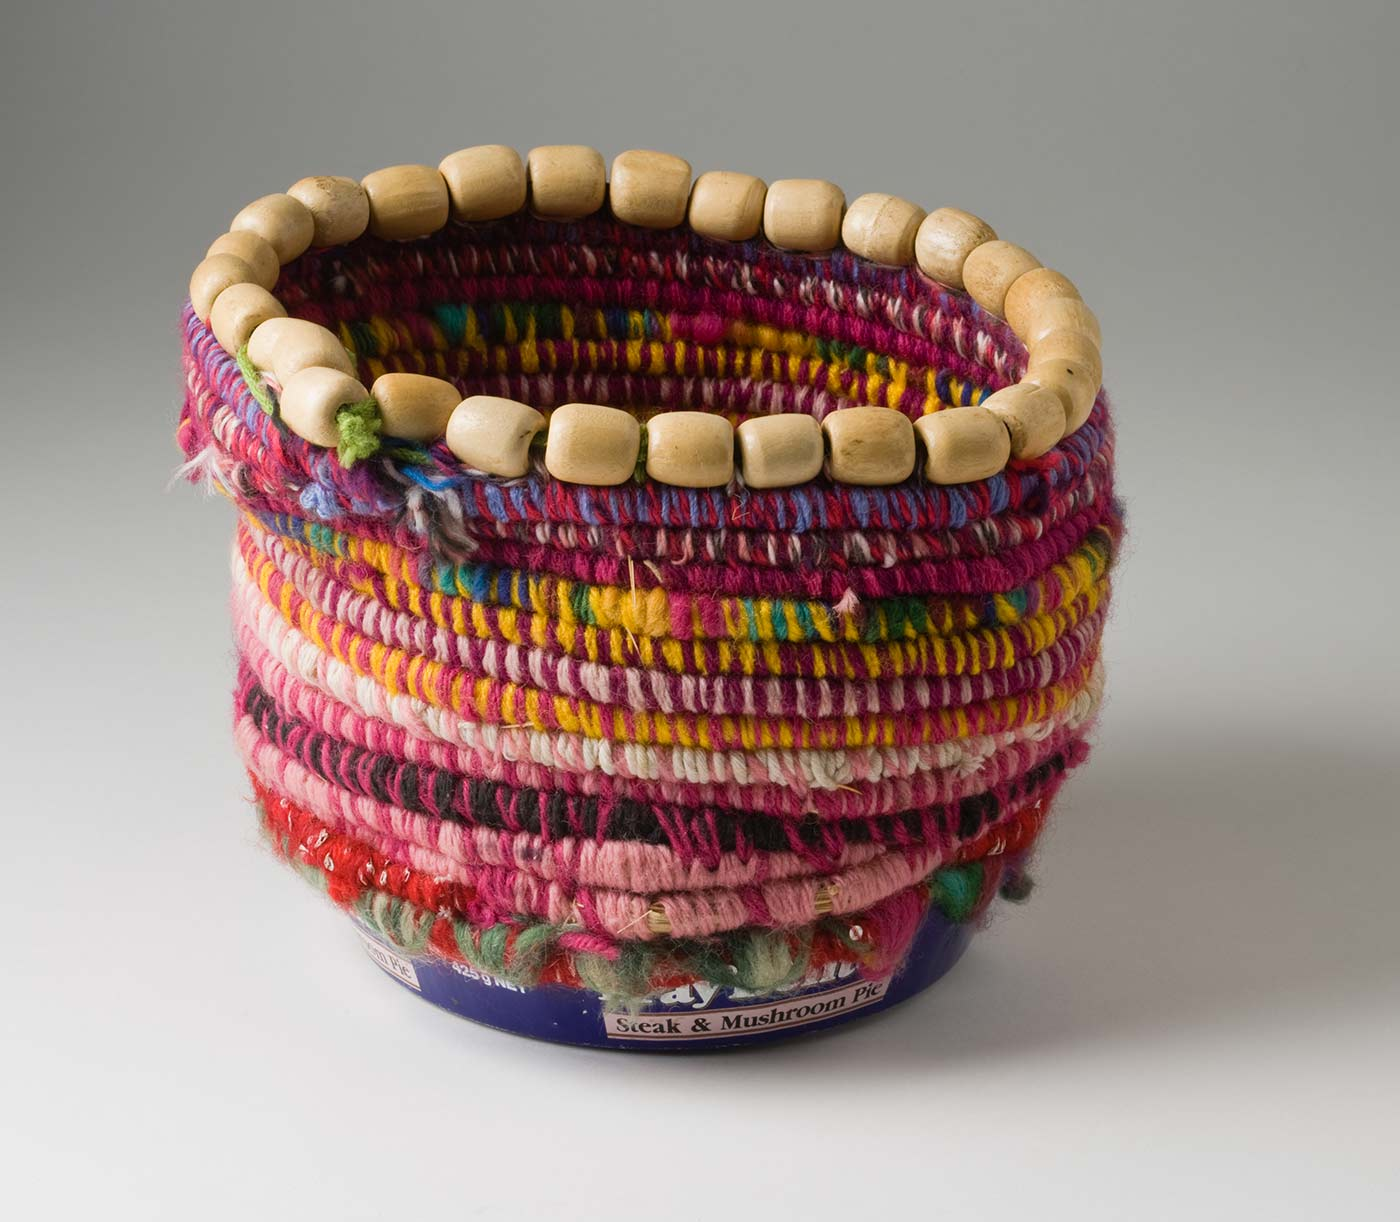 A non-symmetrical cylindrical coiled multicoloured yarn and plant fibre basket, with beaded top edge and metal container base. The blue and white circular base has 'Fray Bentos / Steak and Mushroom Pie' plus other text printed on it. The yarn and fibre section of the basket is attached to the metal base by yarn threaded through holes that have punched in the sides of the tin. The coiled yarn is rainbow coloured with a dominant dark pink tone. On the inside there are two carved brown cylinder beads, two red cylinder beads, one large green round bead and two small round beads in orange and brown. At the top edge of the basket is a ring of natural wood cylinder beads that have been attached with a green yarn. - click to view larger image